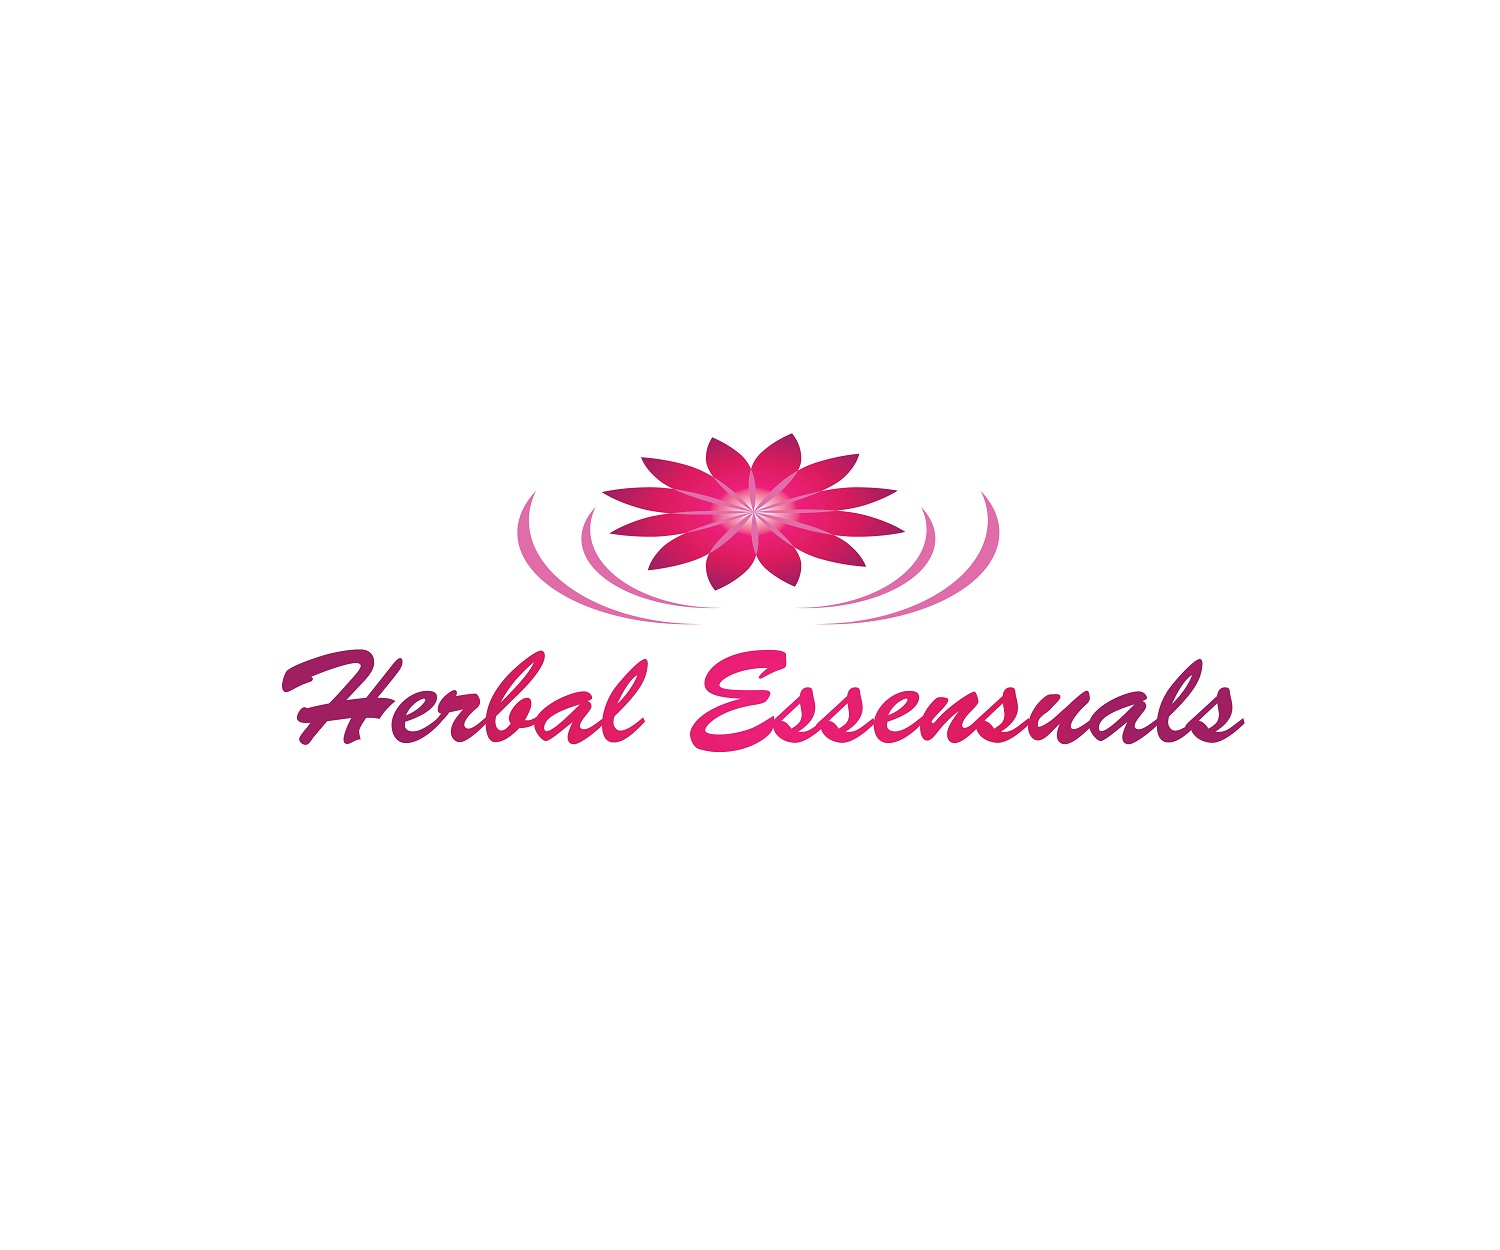 Logo Design by jhunzkie24 - Entry No. 27 in the Logo Design Contest Captivating Logo Design for Herbal Essensuals.